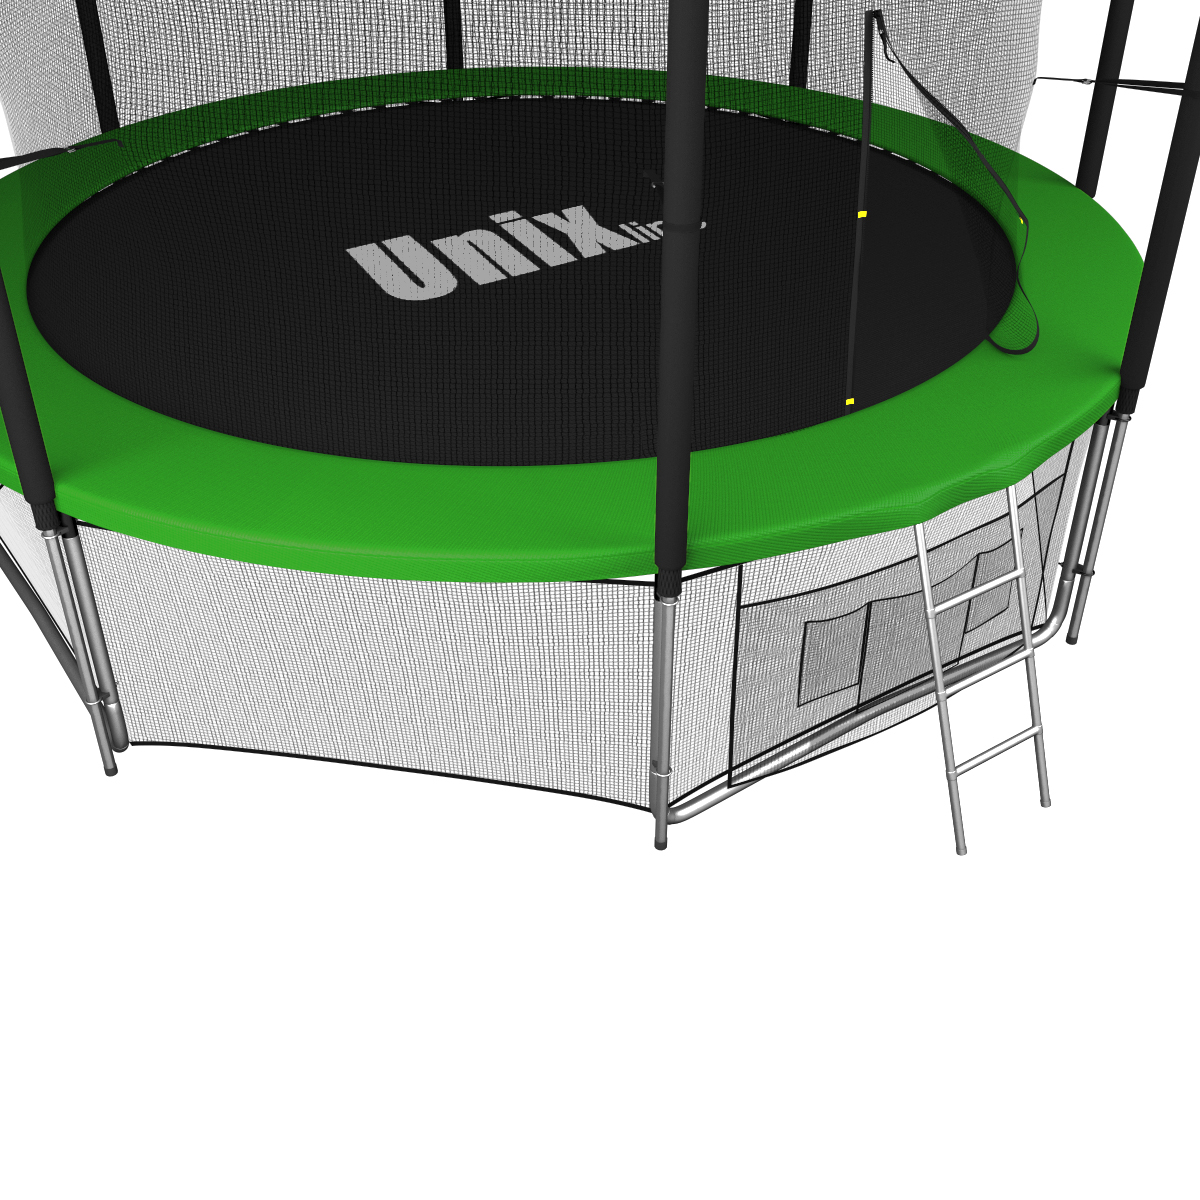 ����� UNIX 14ft Inside Green